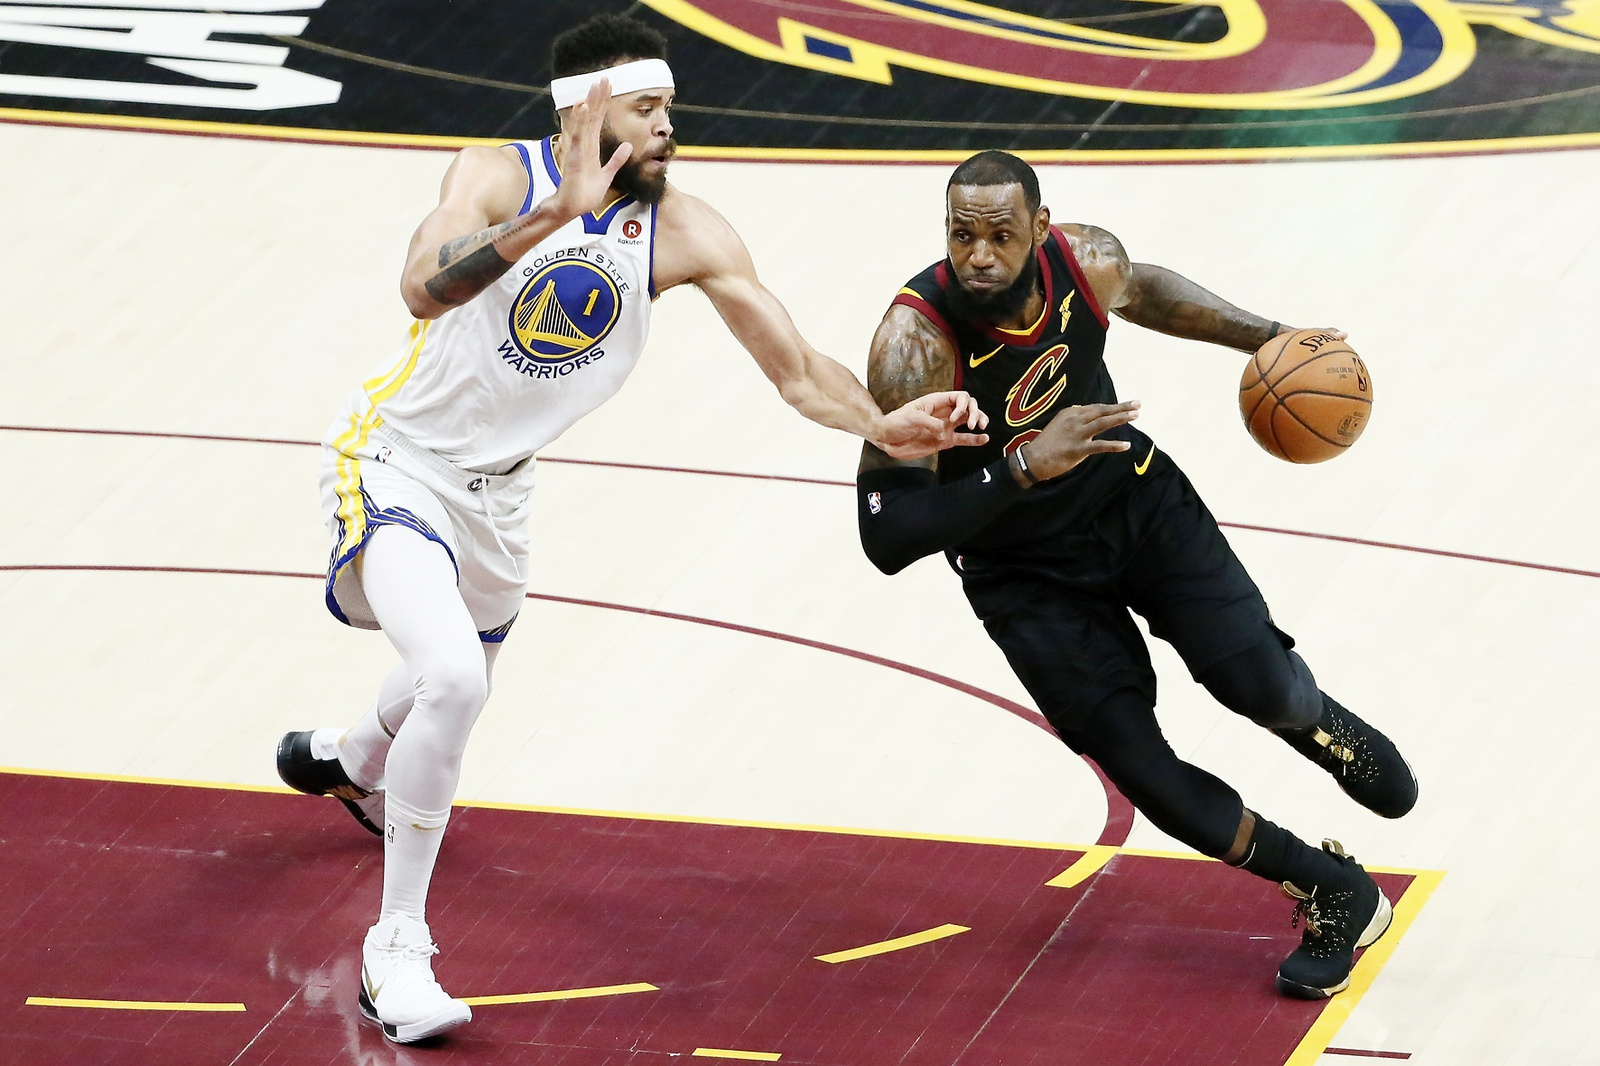 f62cbda19aa LeBron James  23 of the Cleveland Cavaliers handles the ball against JaVale  McGee  1